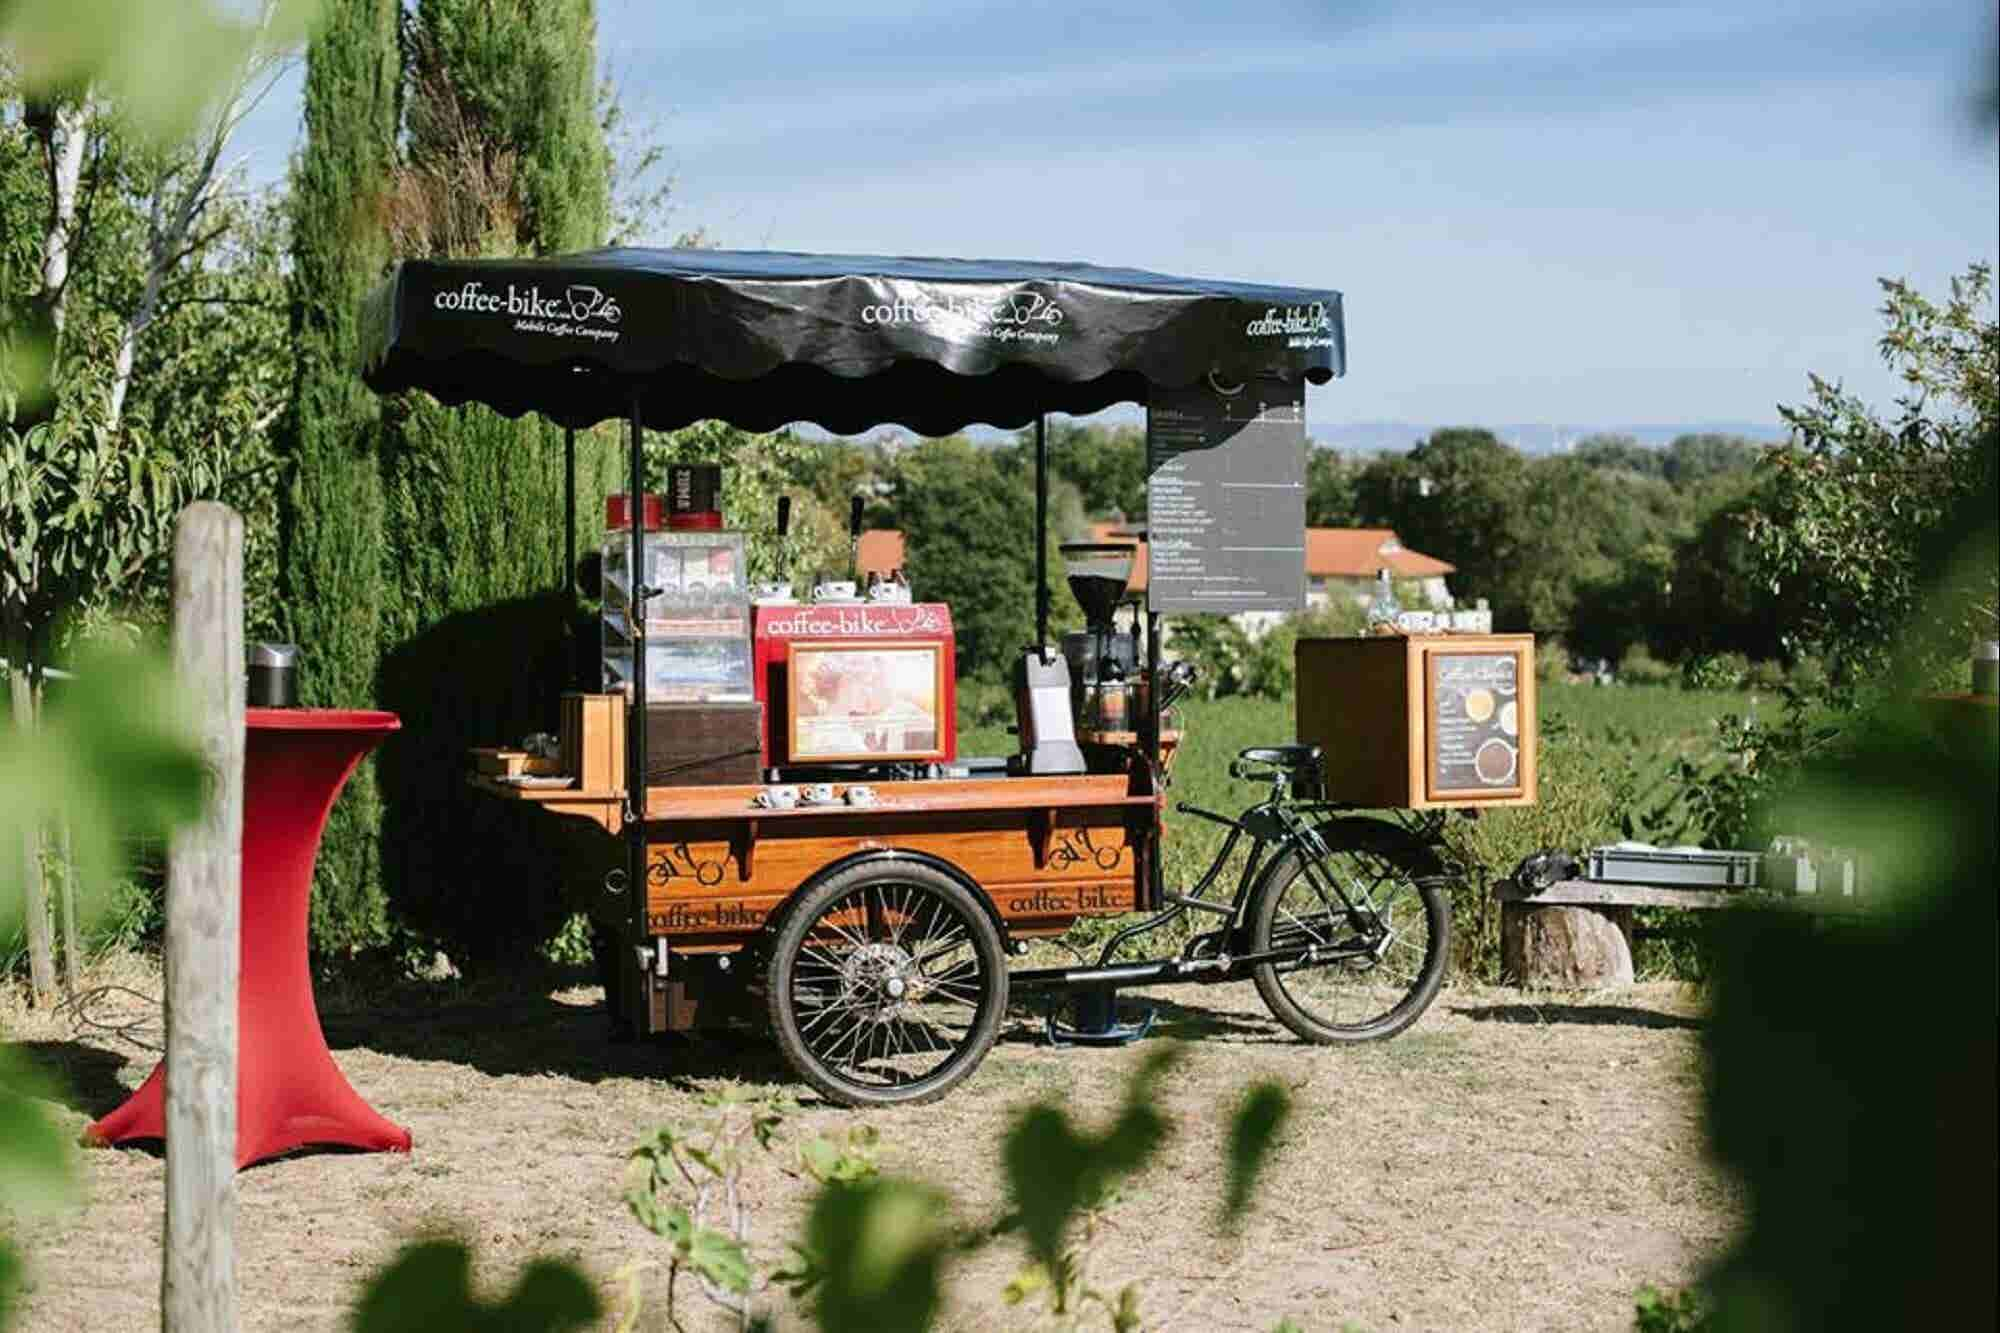 This German Coffee Seller is taking the Sustainable Route to Asia